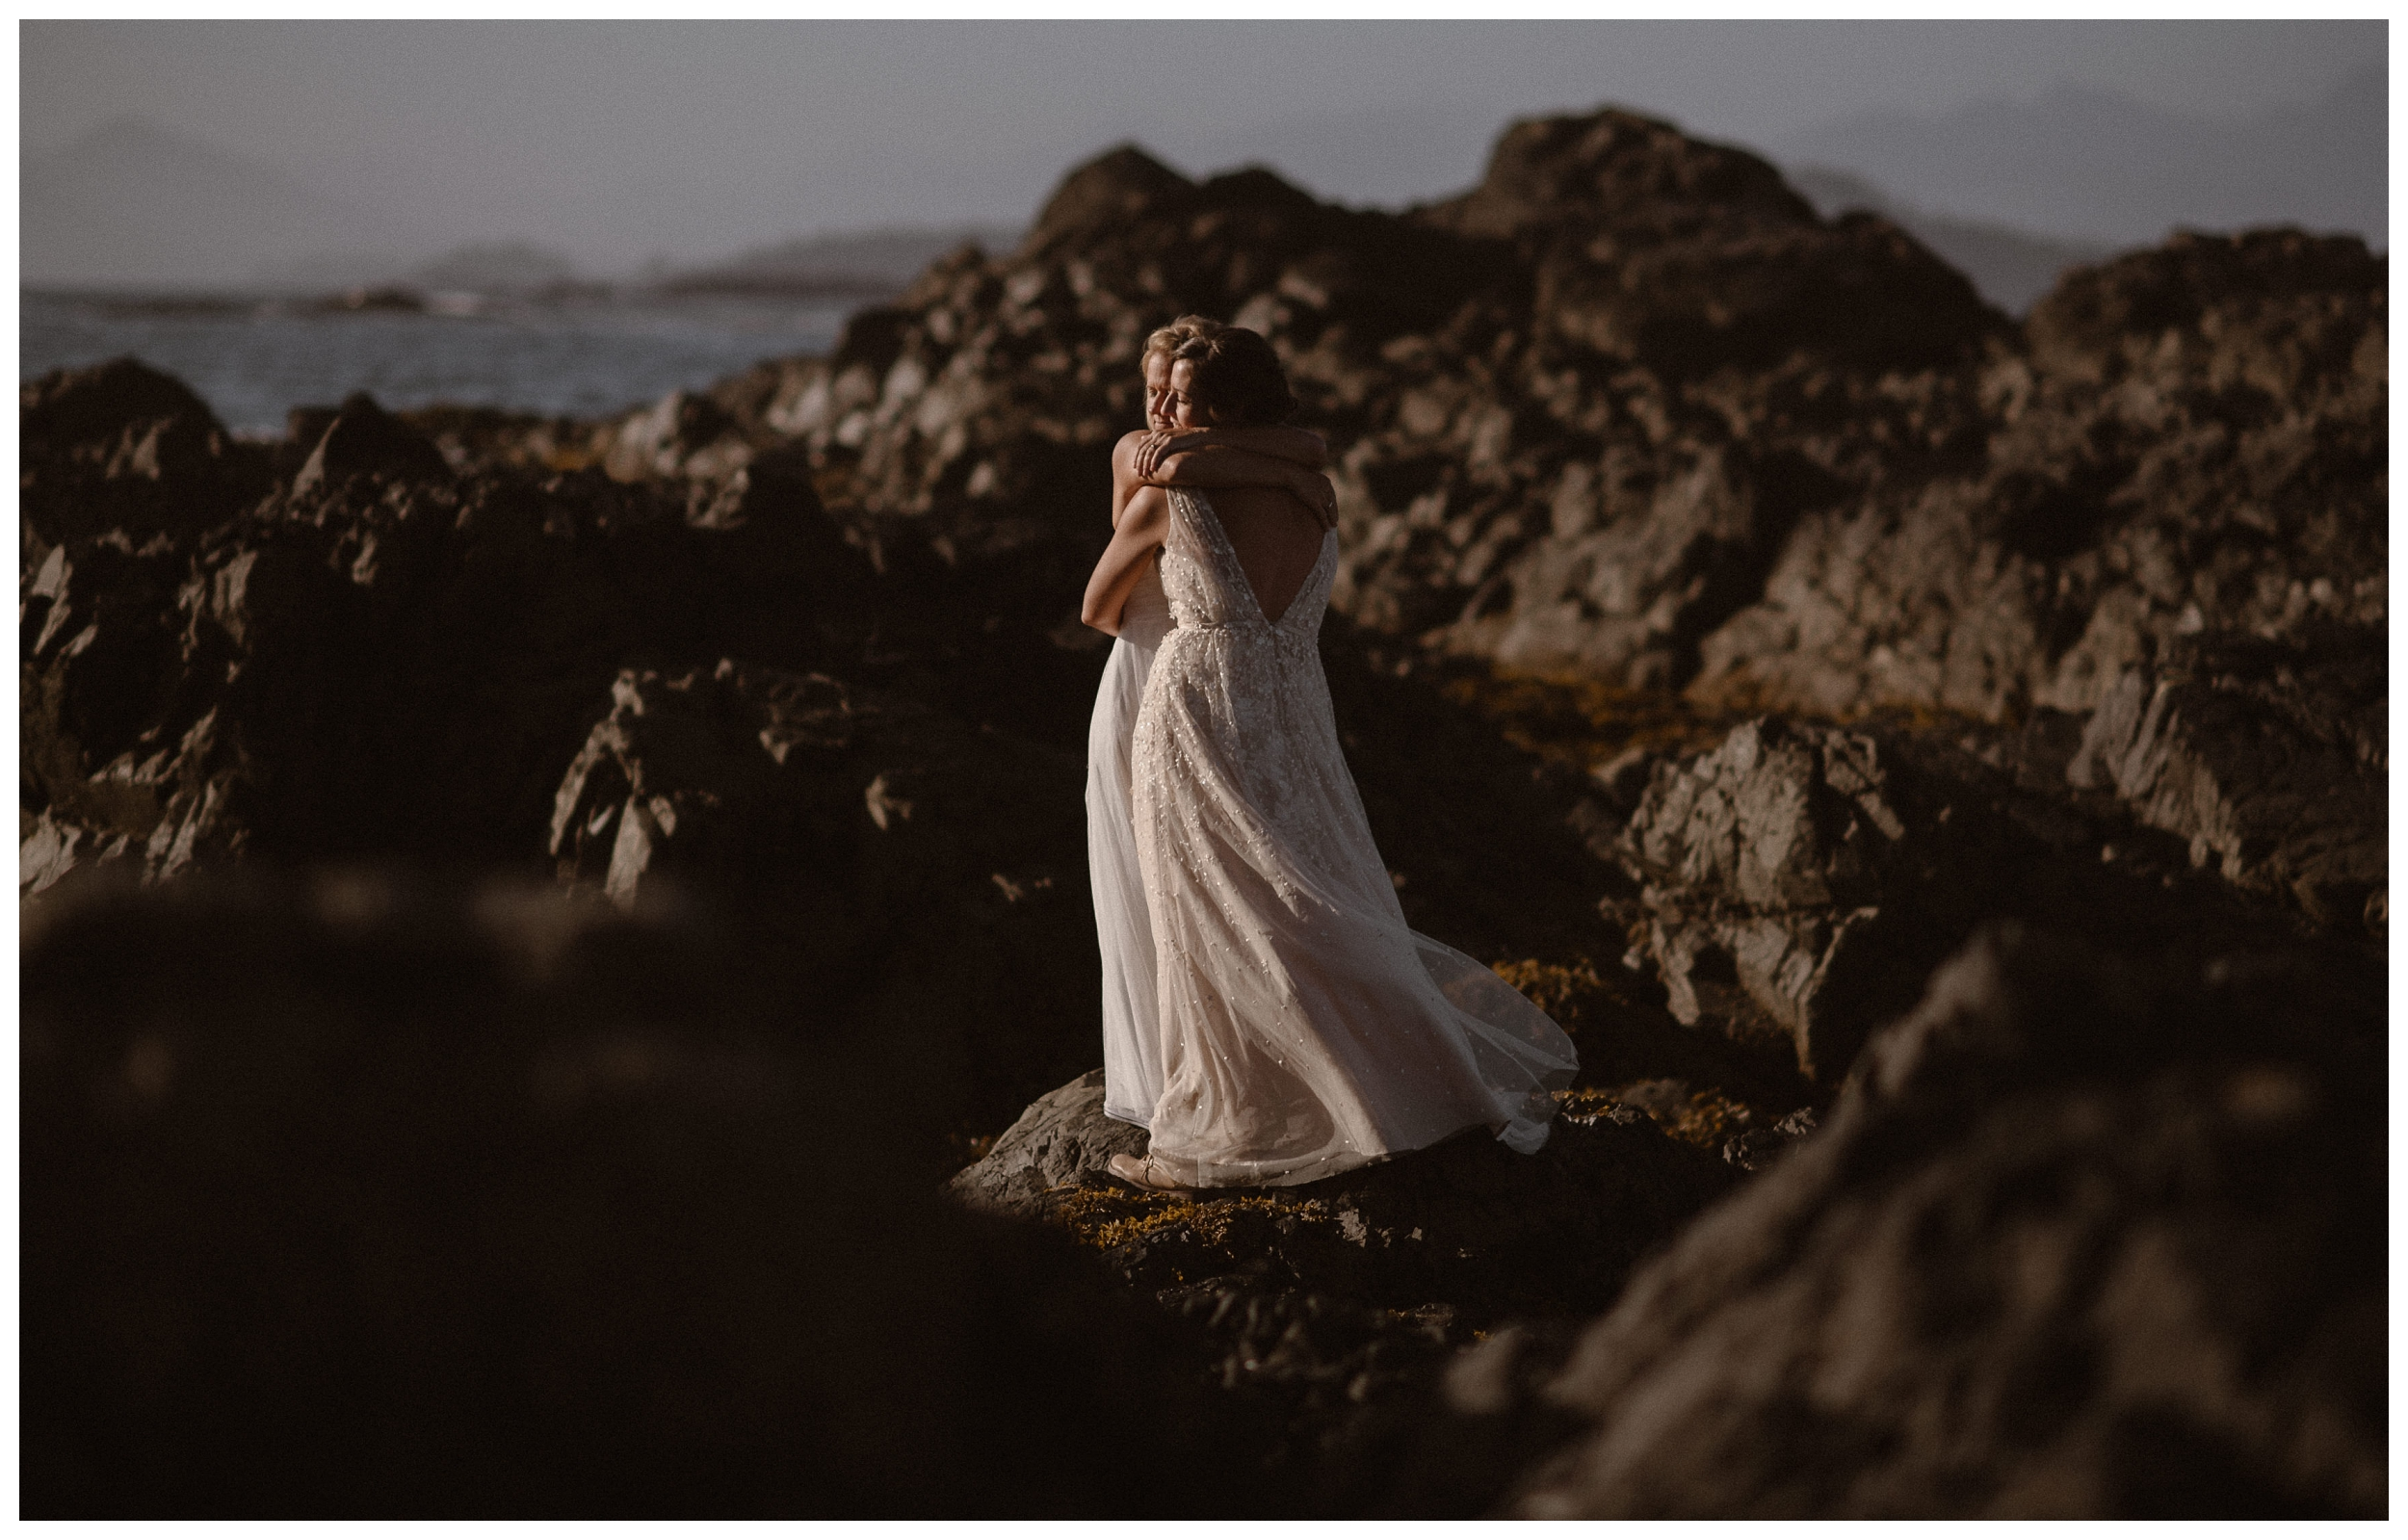 Rangefinder-Top-Wedding-Photographers-Adventure-Instead-Maddie-Mae-Destination-Elopement-Photography-Eloping-Photographers_0029.jpg